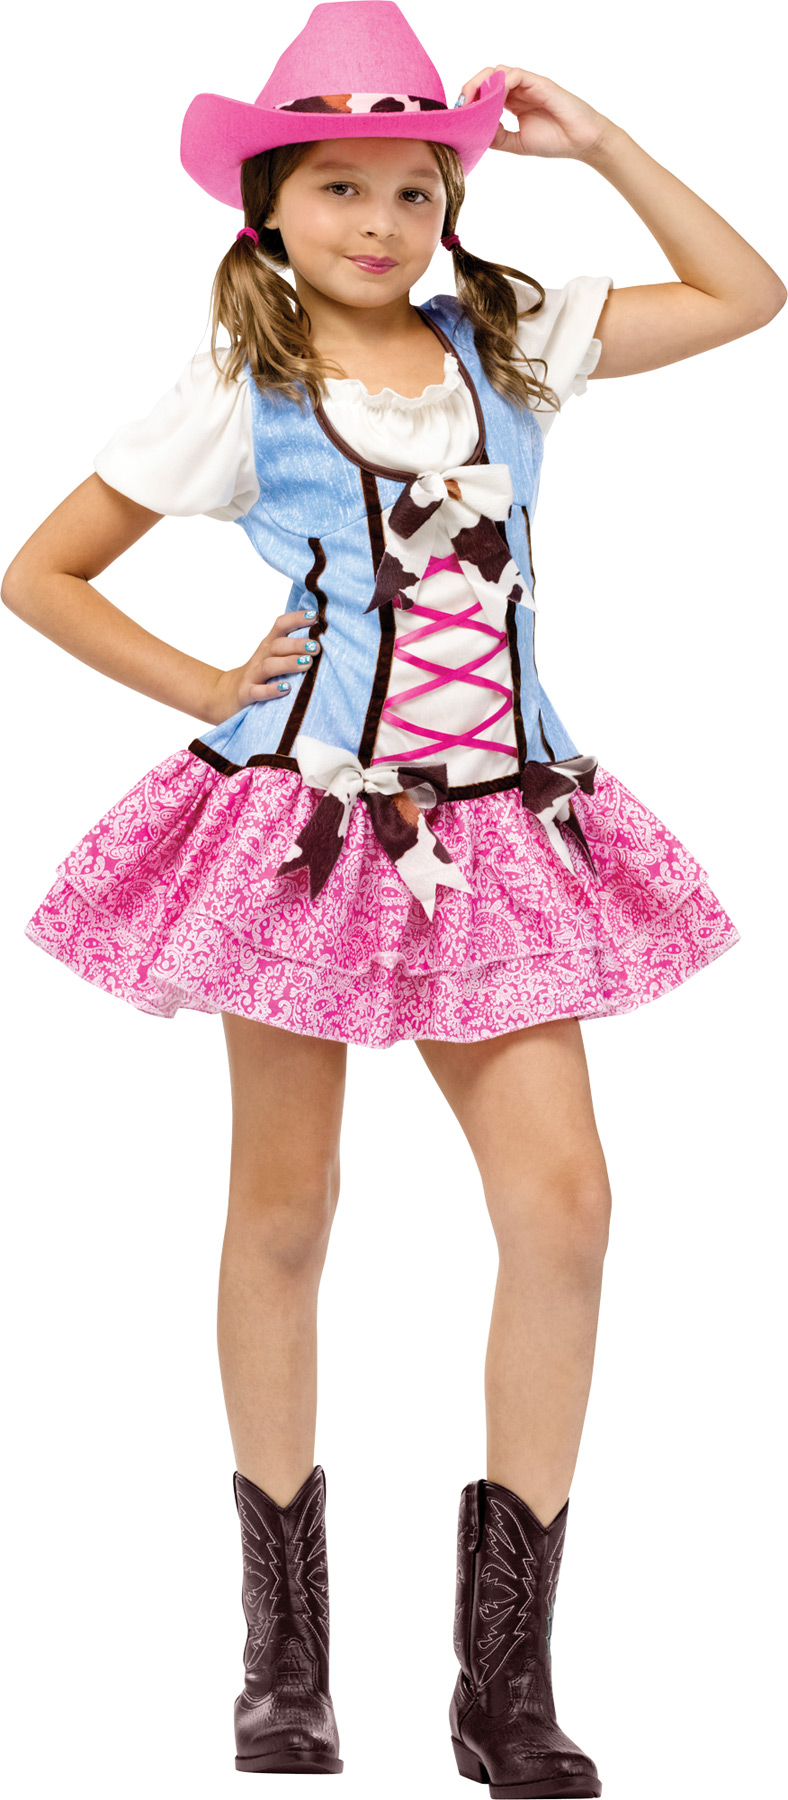 photos of single girls 50's costumes № 142571